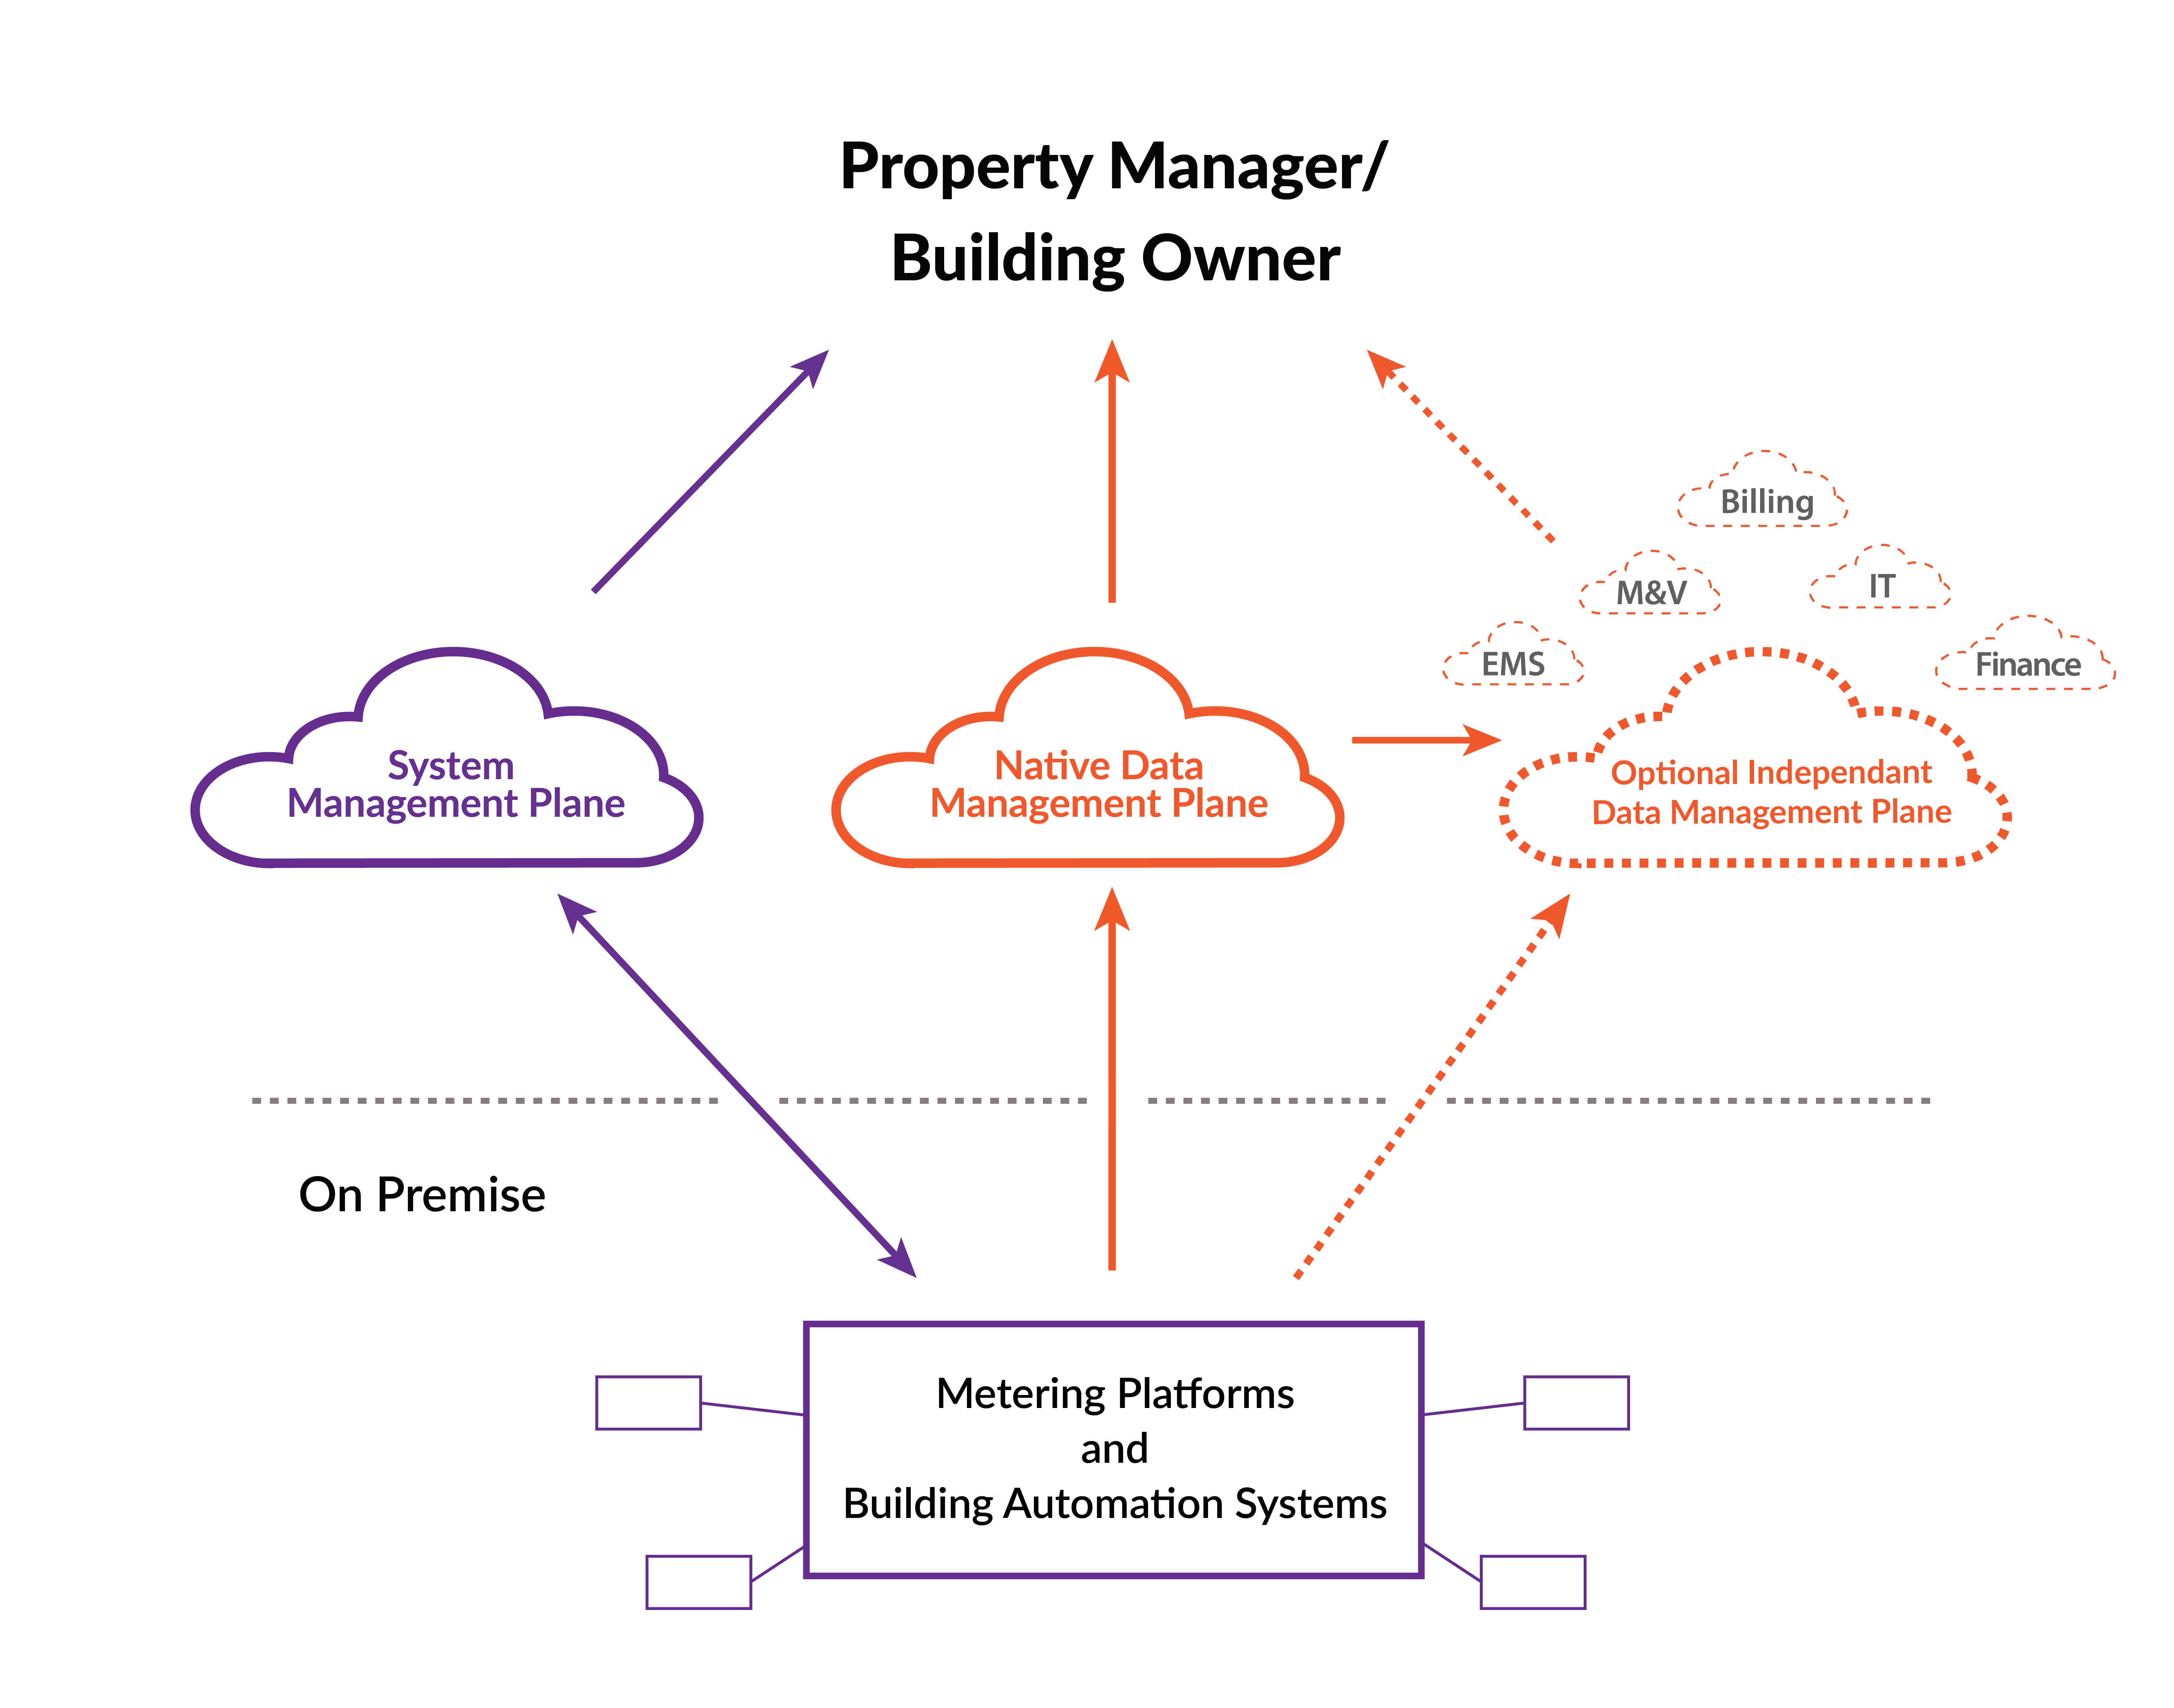 Metering and BAS System Diagram Showing System Management , Native Data Management and Independent Data Mananagement Plan